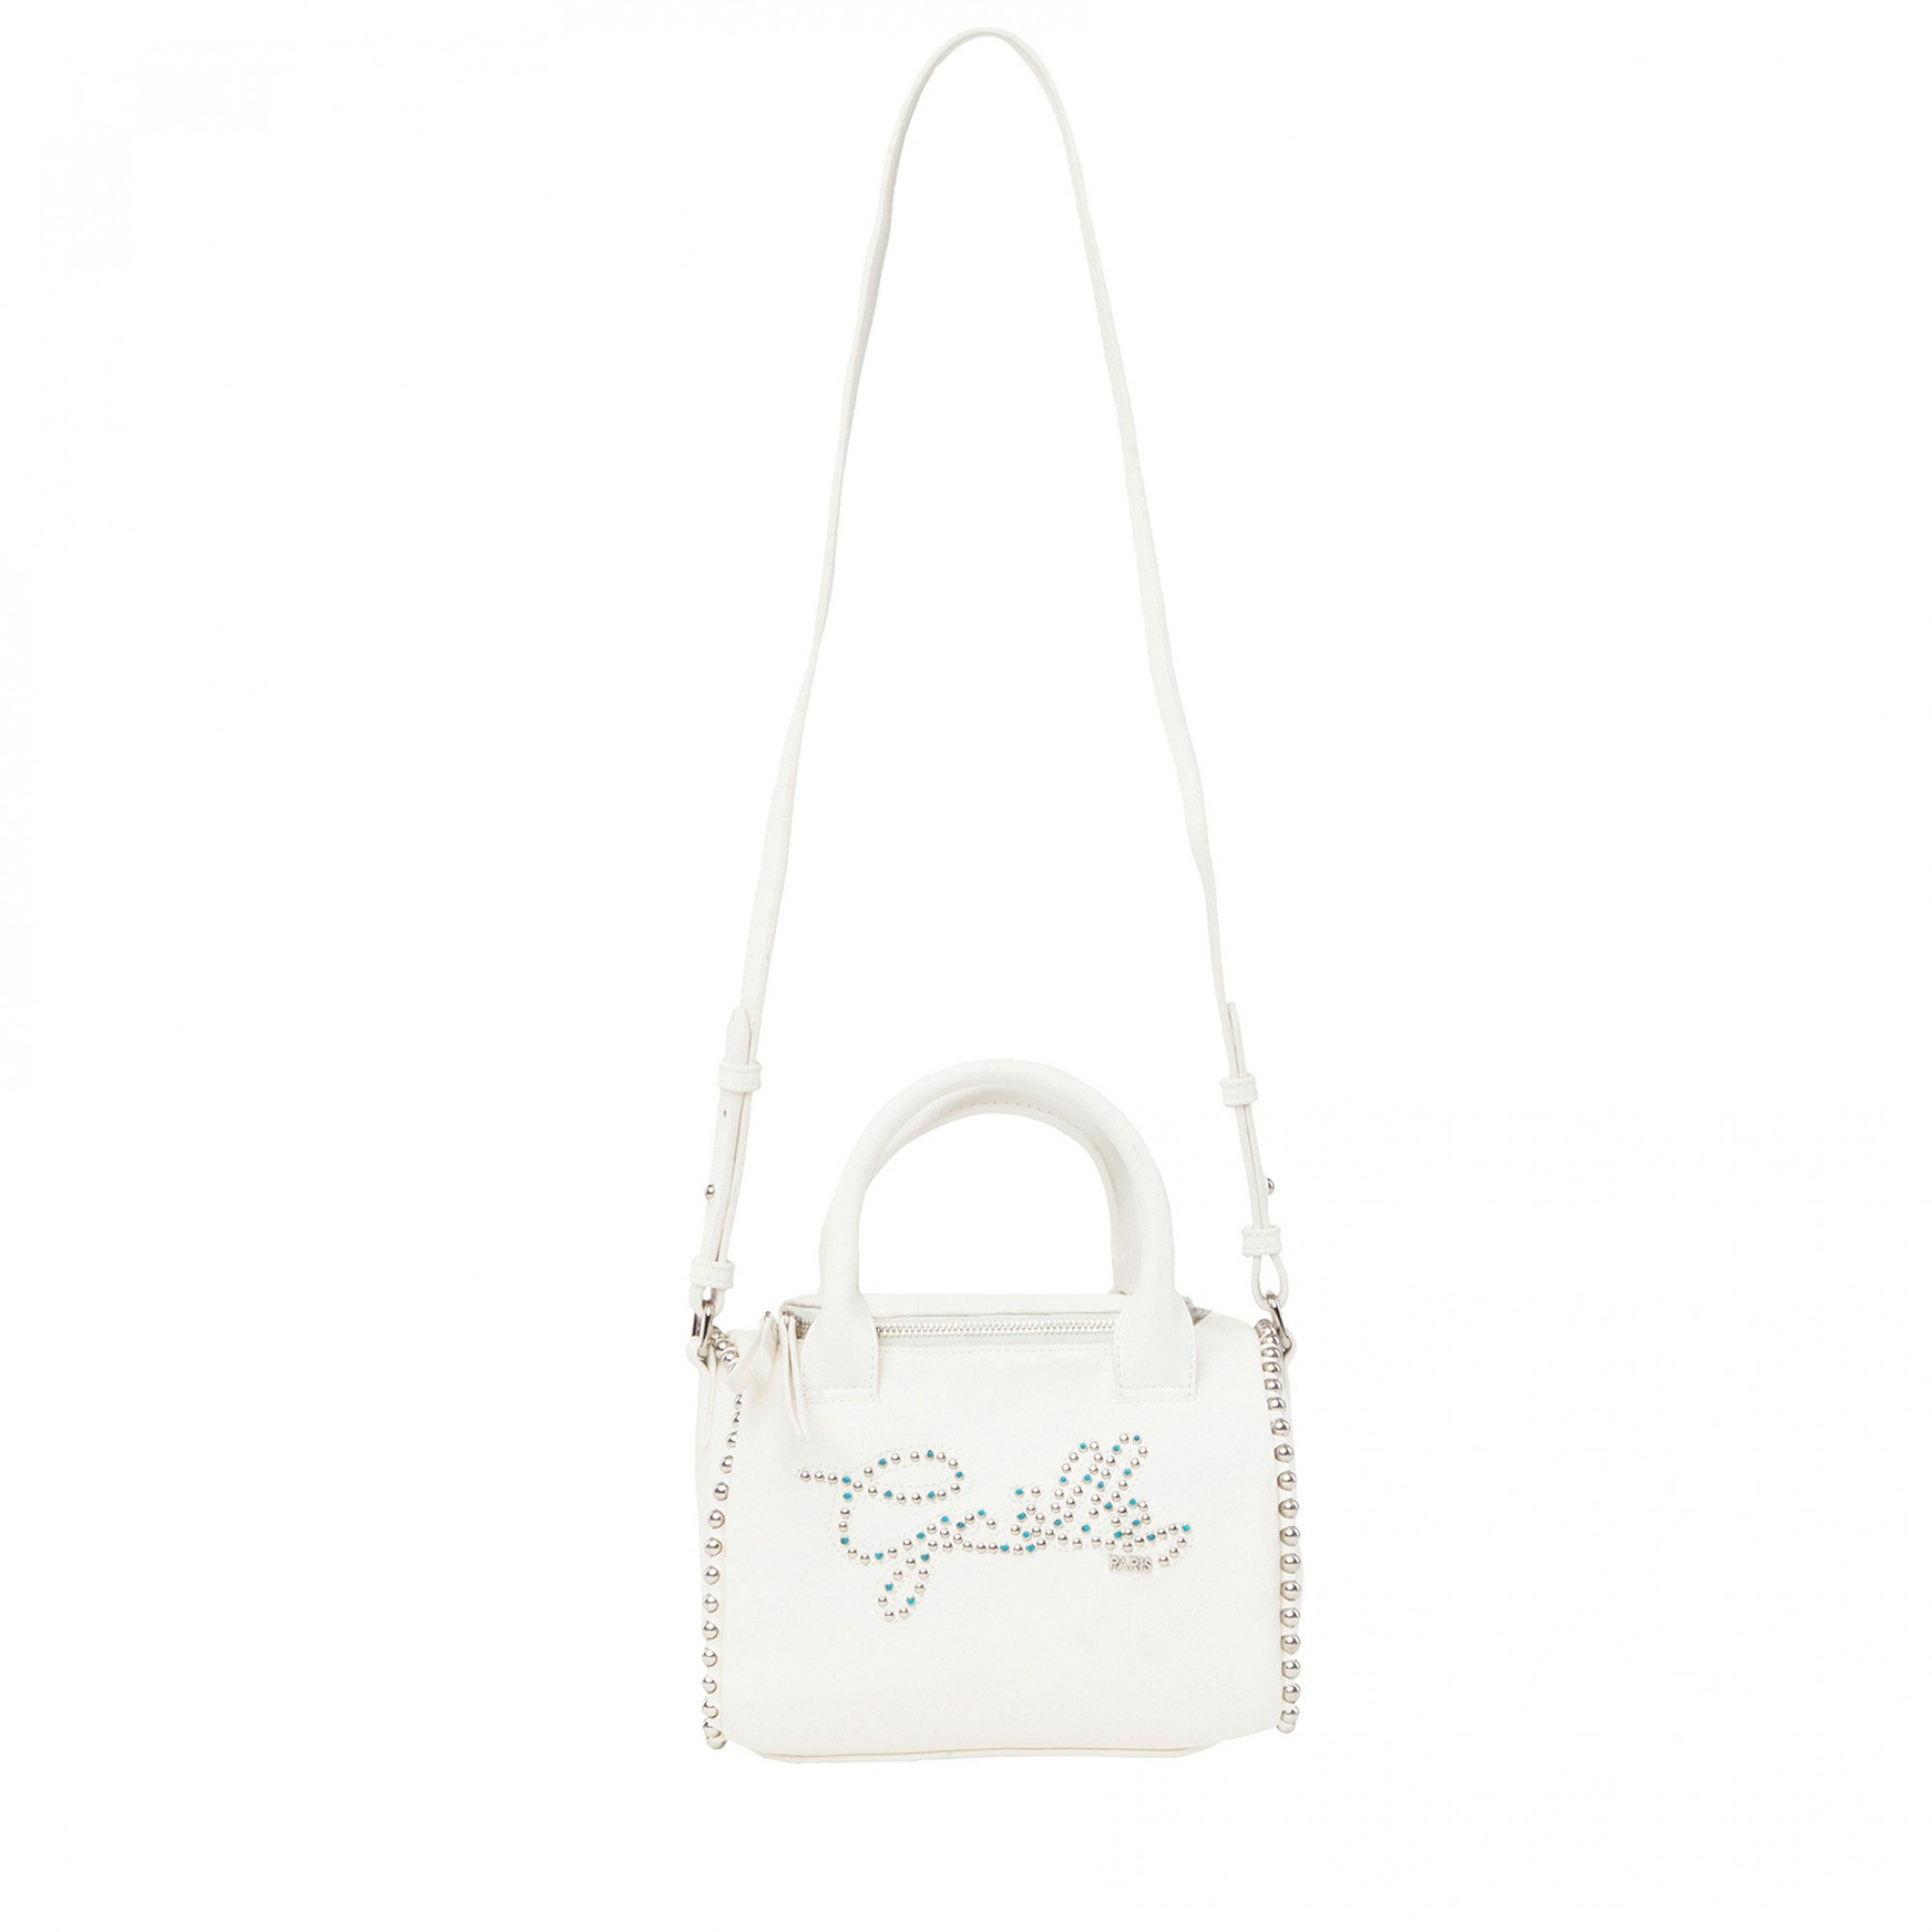 BAULETTO - GBDA730 - GAELLE PARIS